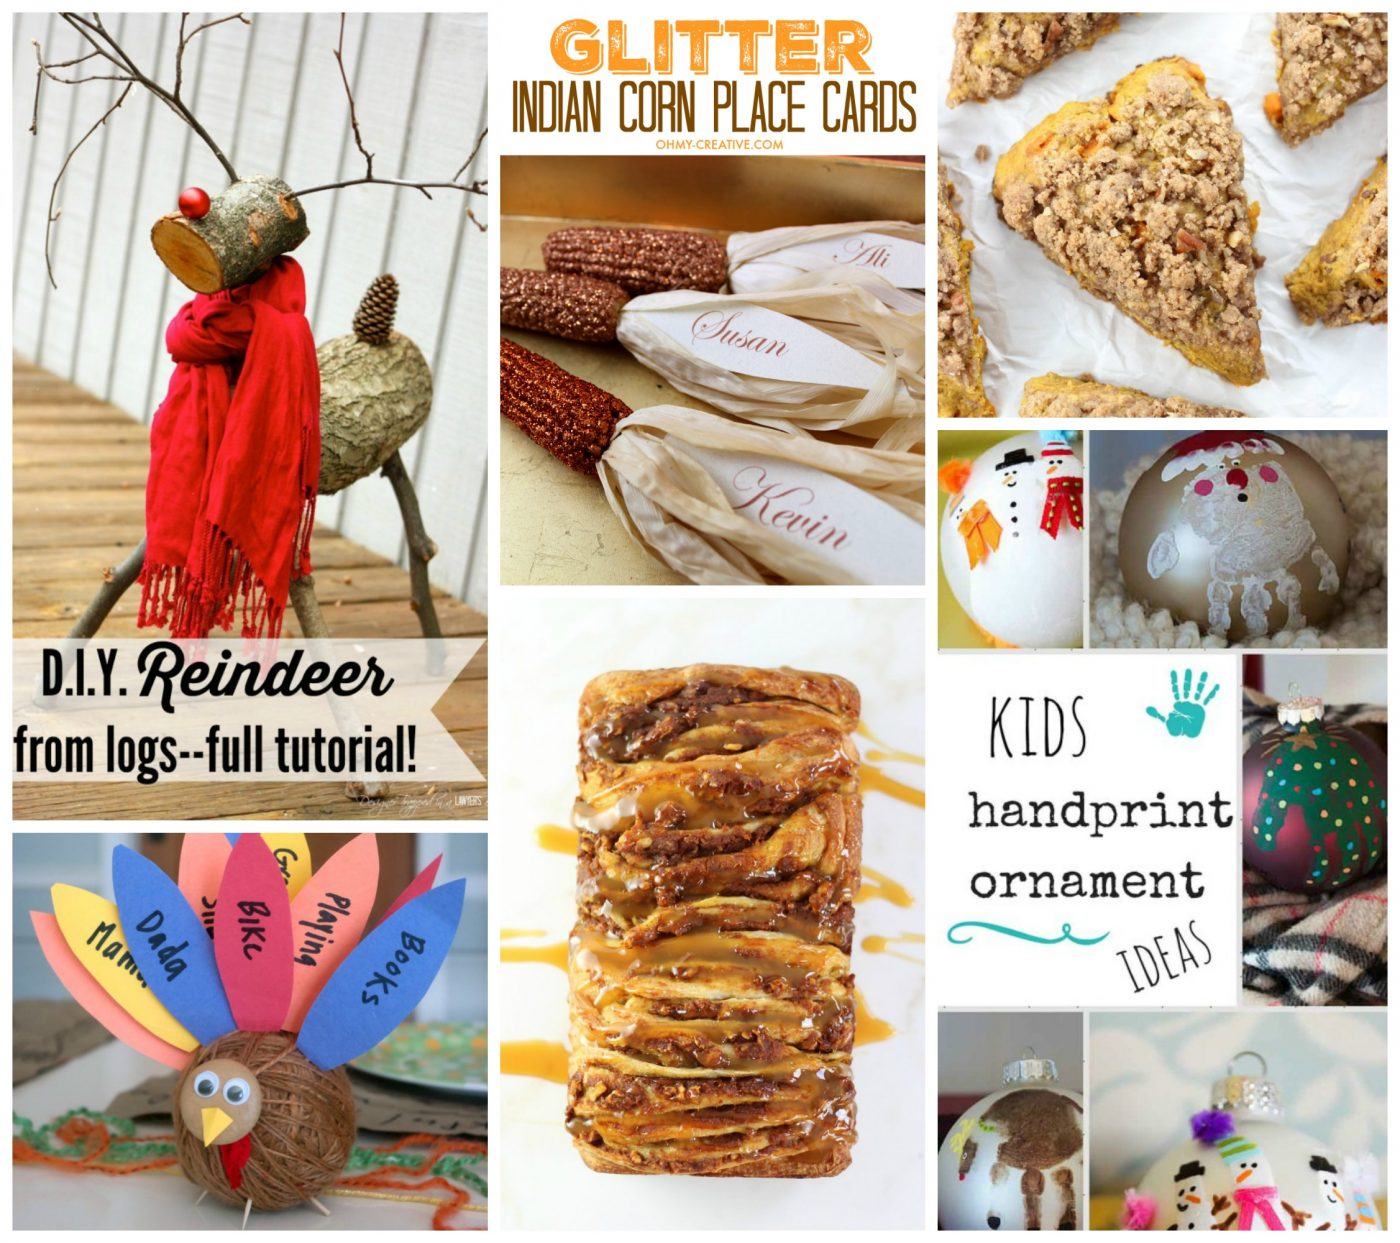 Kitchen Fun And Crafty Friday Link Party 167: Kitchen Fun & Crafty Friday Link Party #192